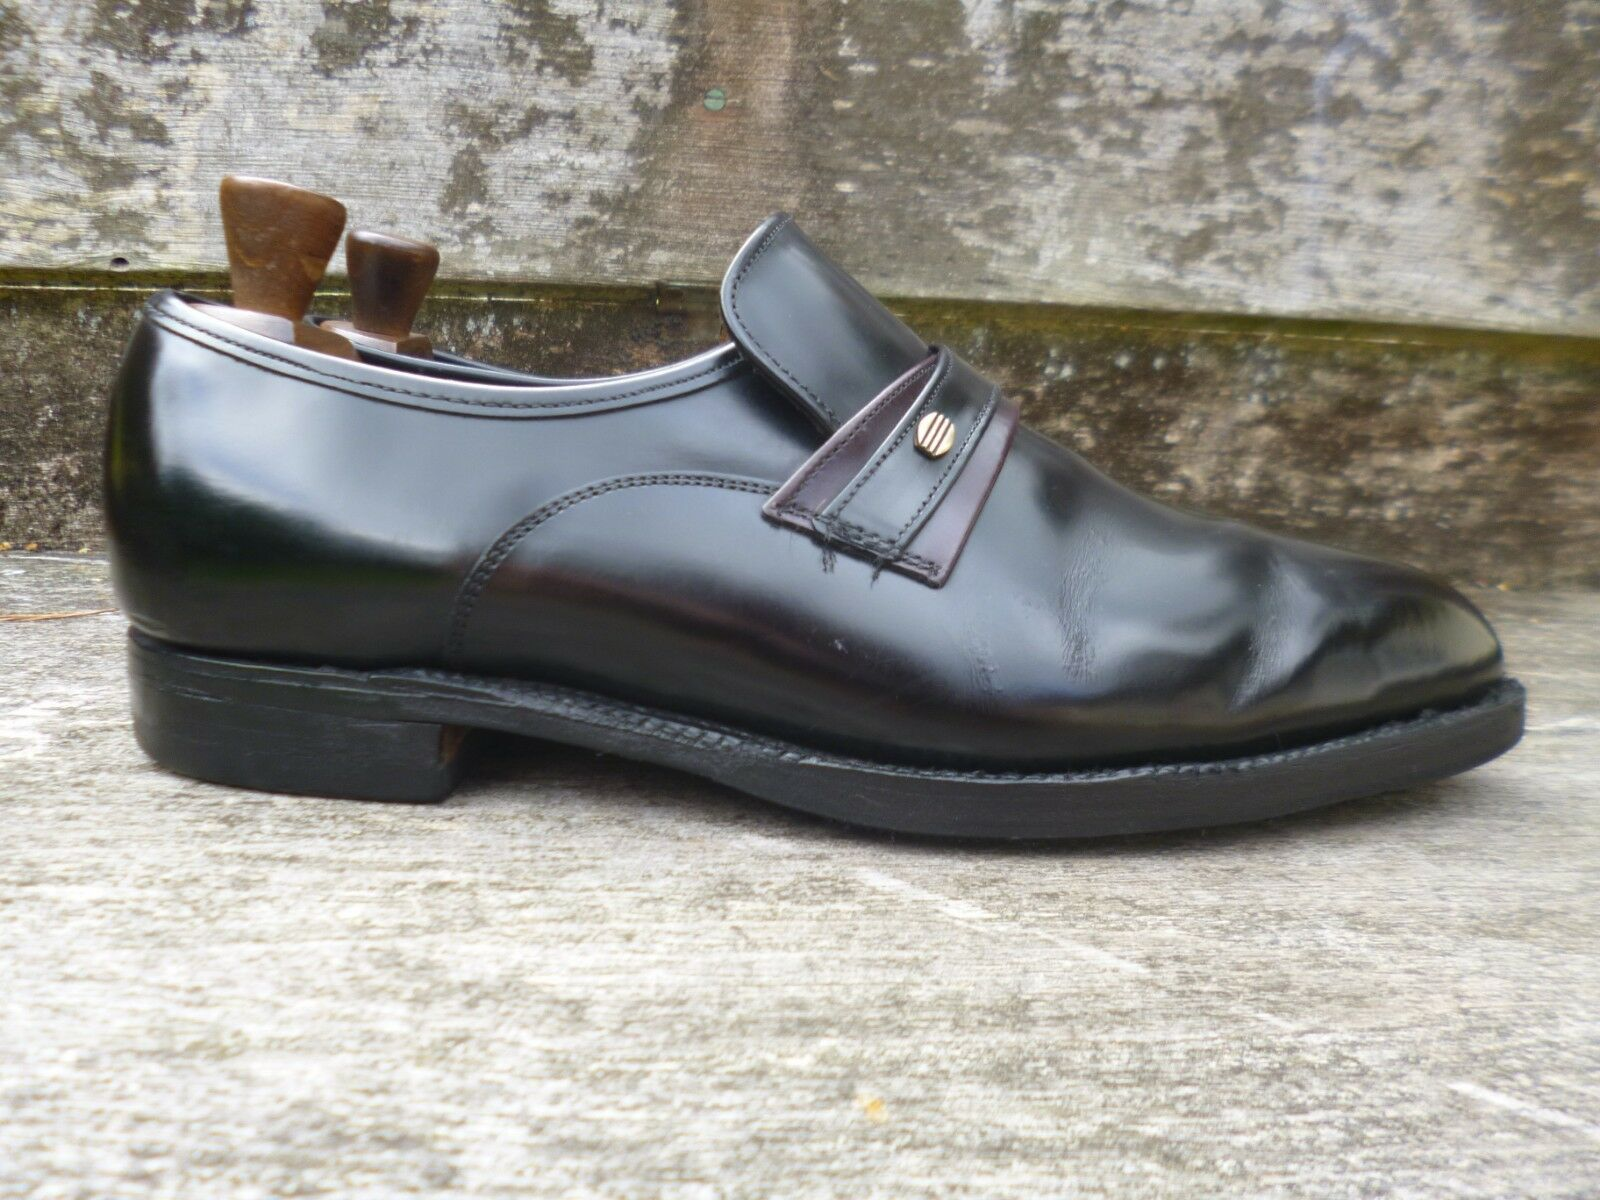 CHEANEY / CHURCH LOAFERS 8.5 – BLACK – UK 8.5 LOAFERS – WHITBY - EXCELLENT CONDITION 2d65d7